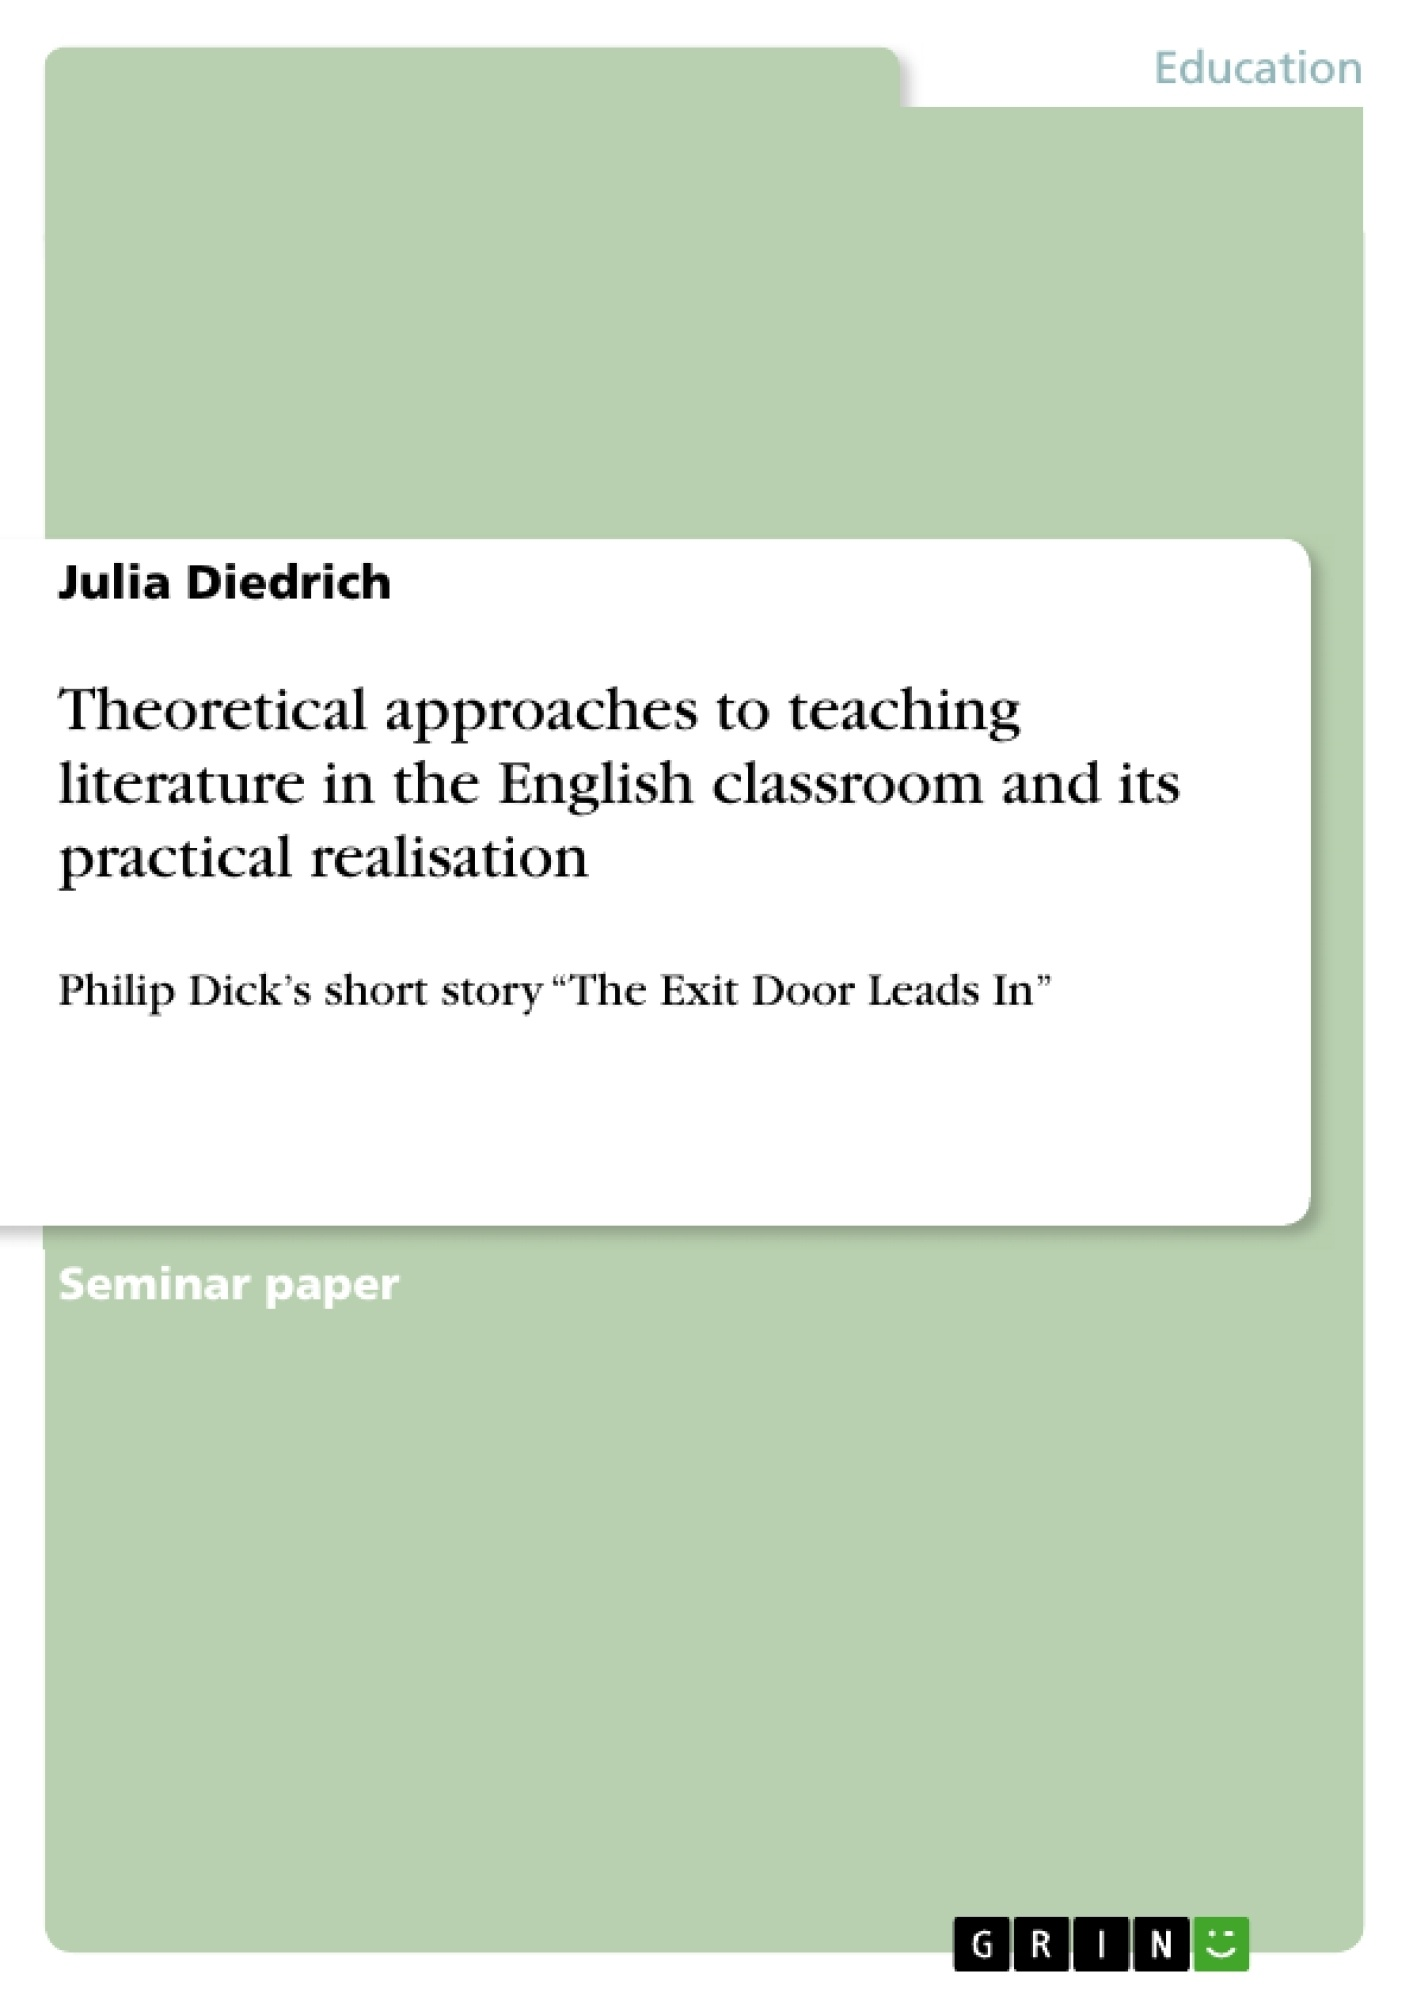 Title: Theoretical approaches to teaching literature in the English classroom and its practical realisation